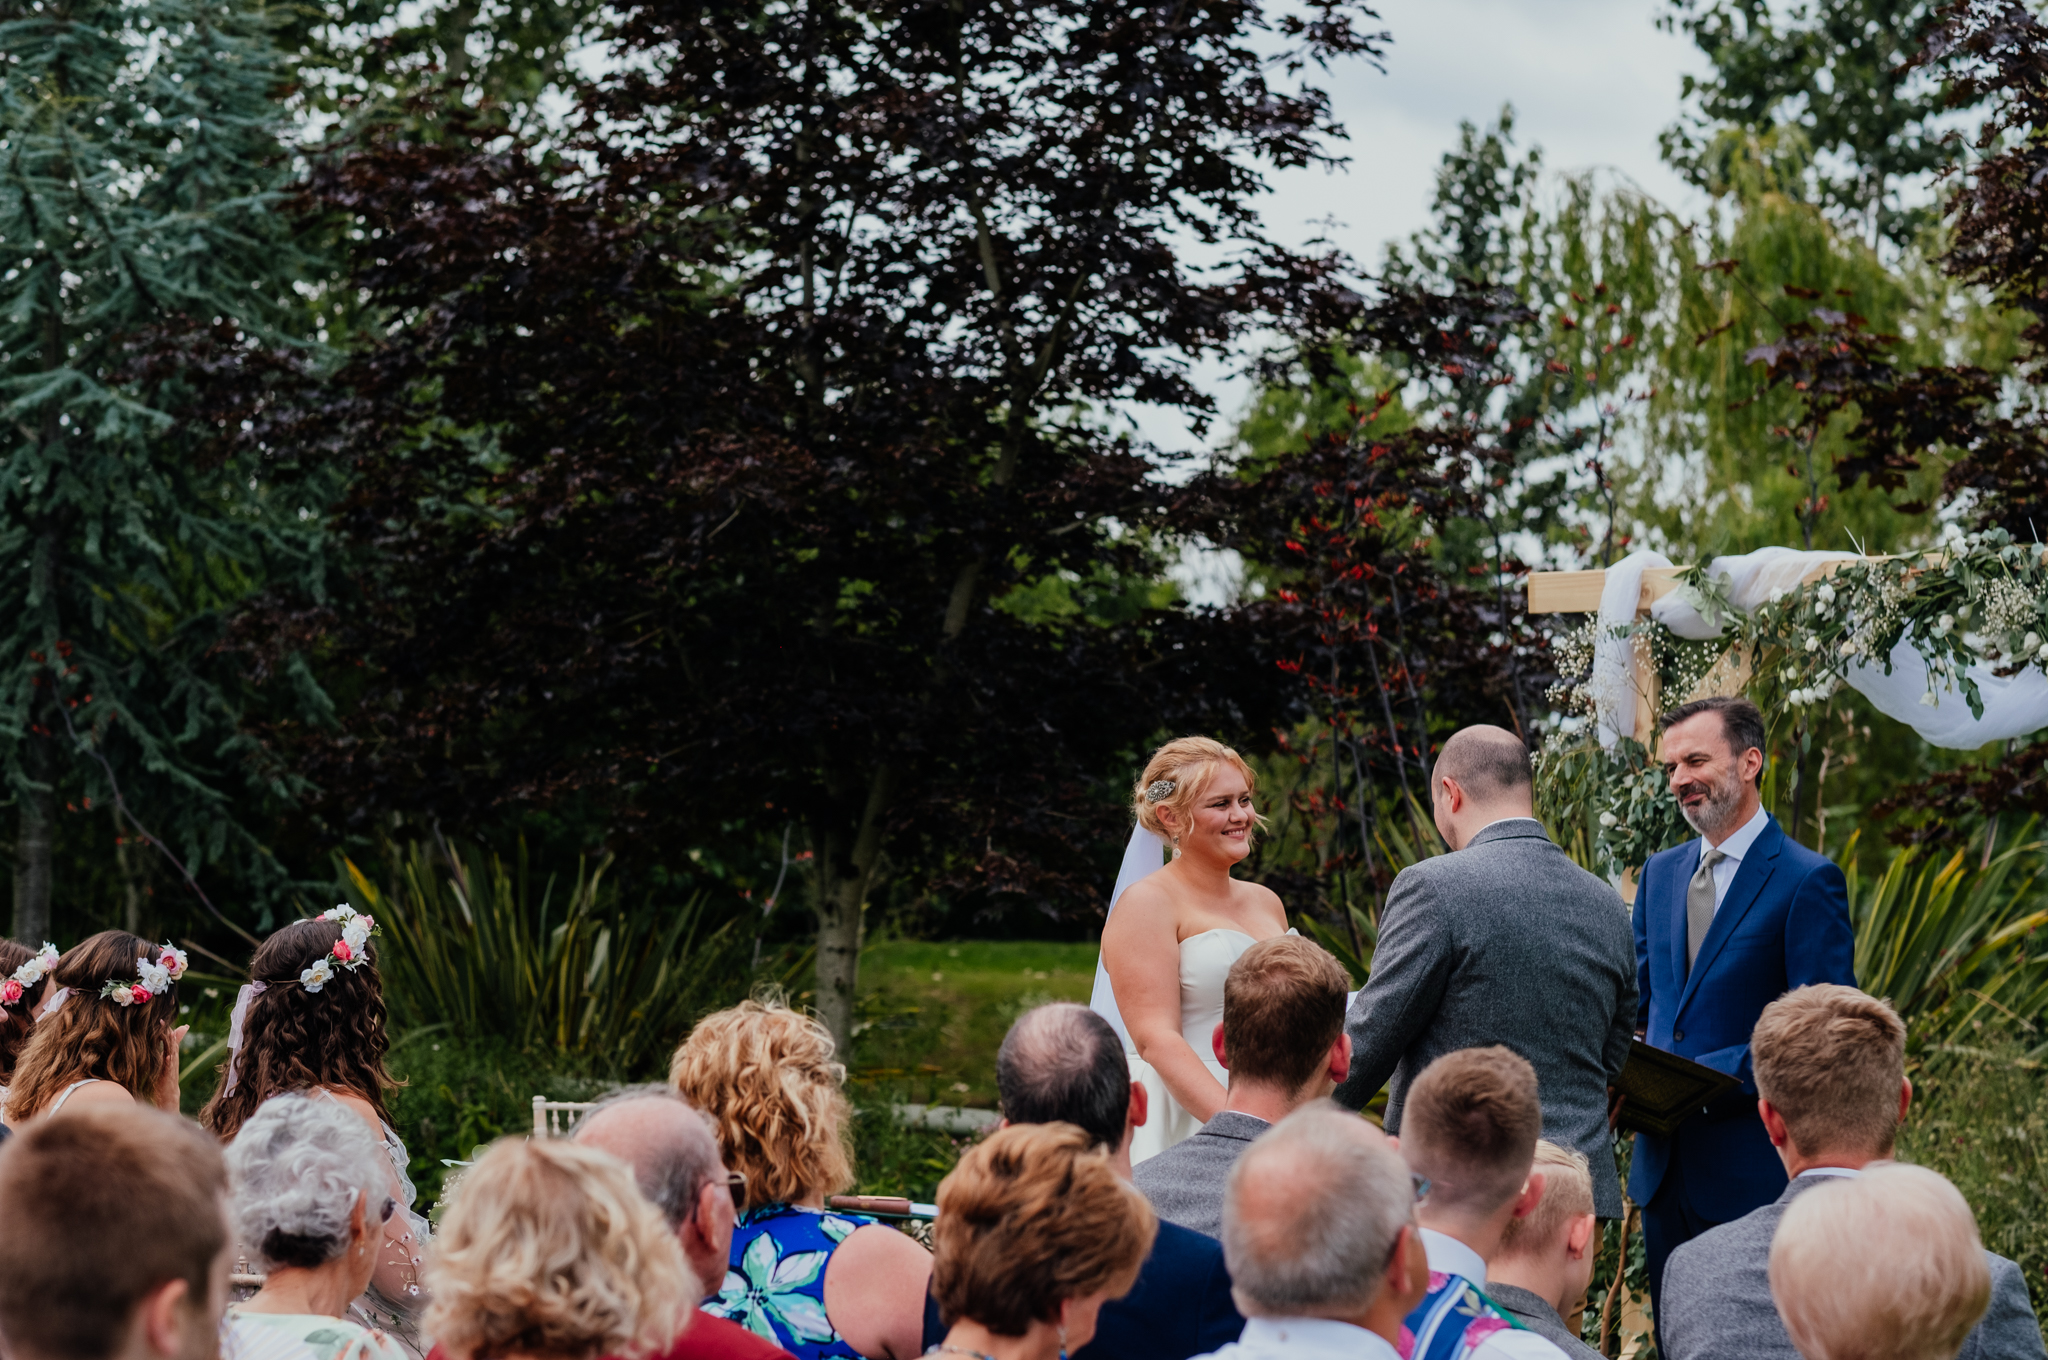 Bride and groom exchanging vows during wedding ceremony at Rumbolds Farm